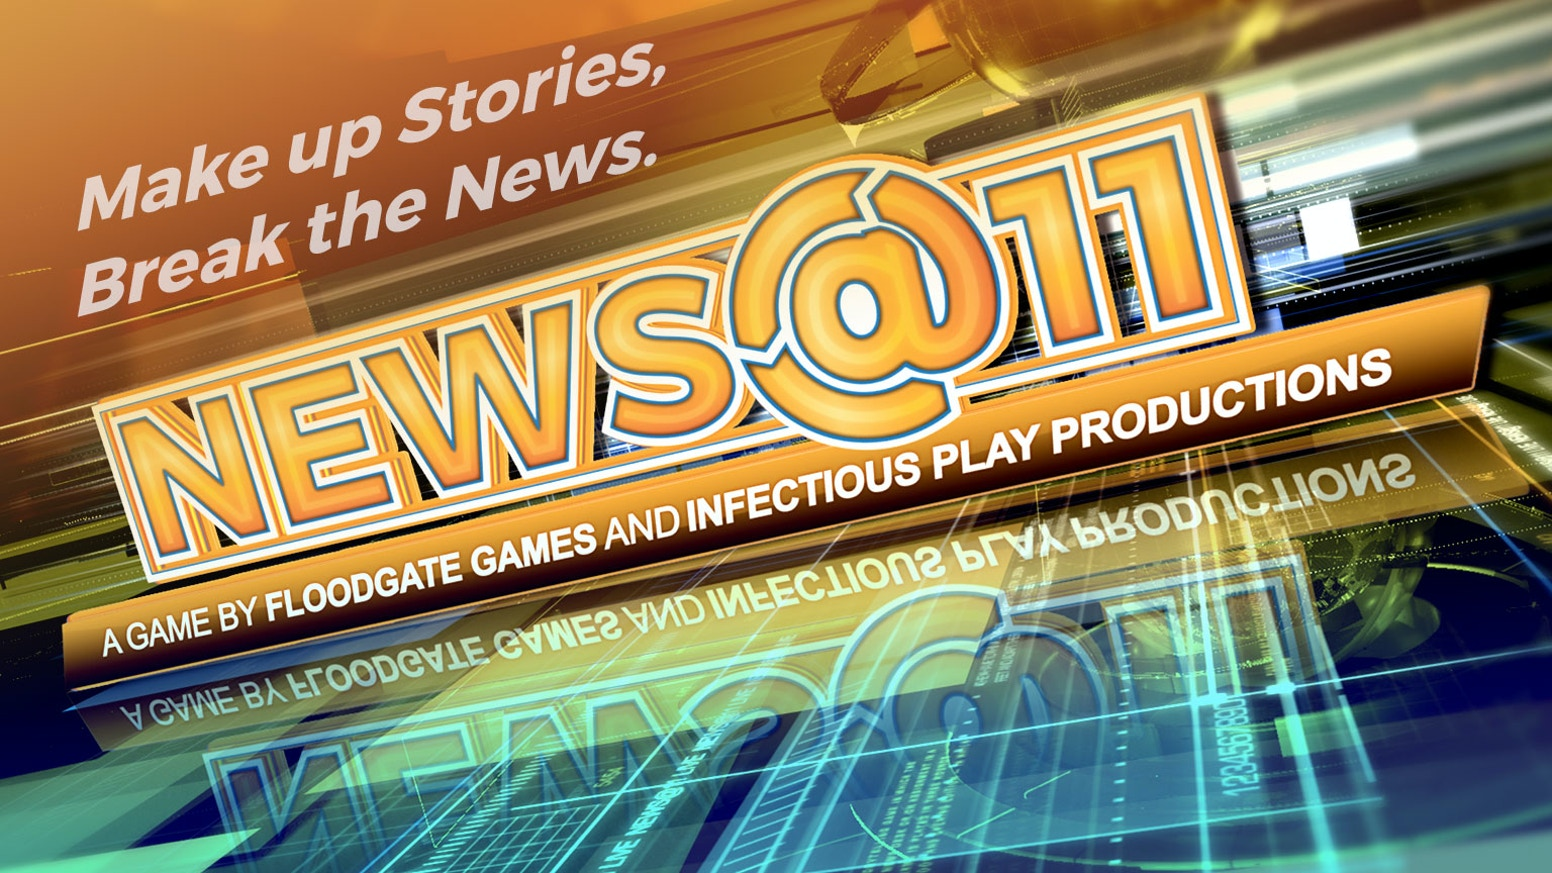 A cyclical storytelling game for 4 to 11 players - 30 min. A hilarious game of making up stories to deliver the news. News at 11